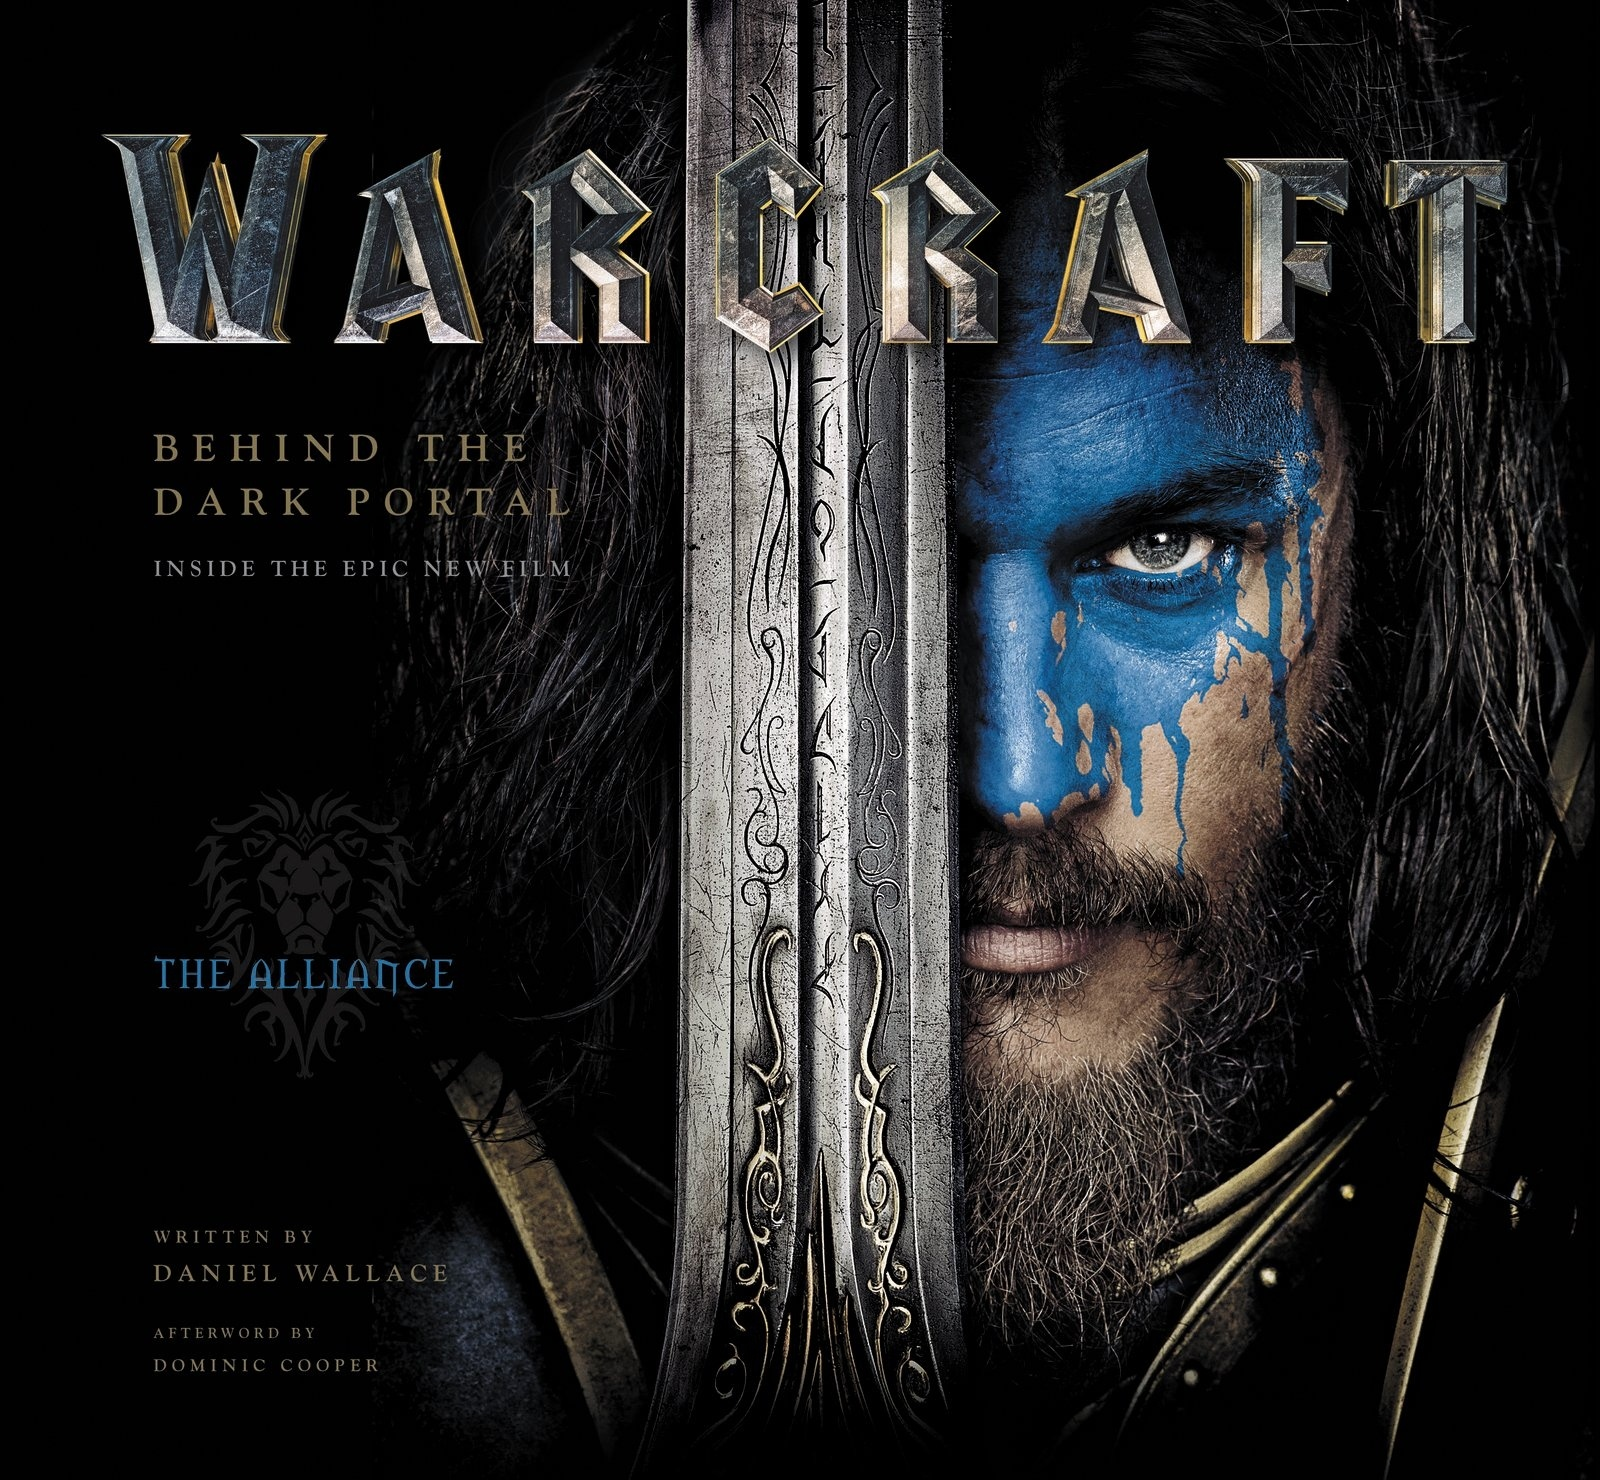 Wowhead weekly 76 druid artifact form colors per race warcraft a stunning behind the scenes look at the making of legendary pictures and universal pictures warcraft behind the dark portal and based on blizzard nvjuhfo Choice Image